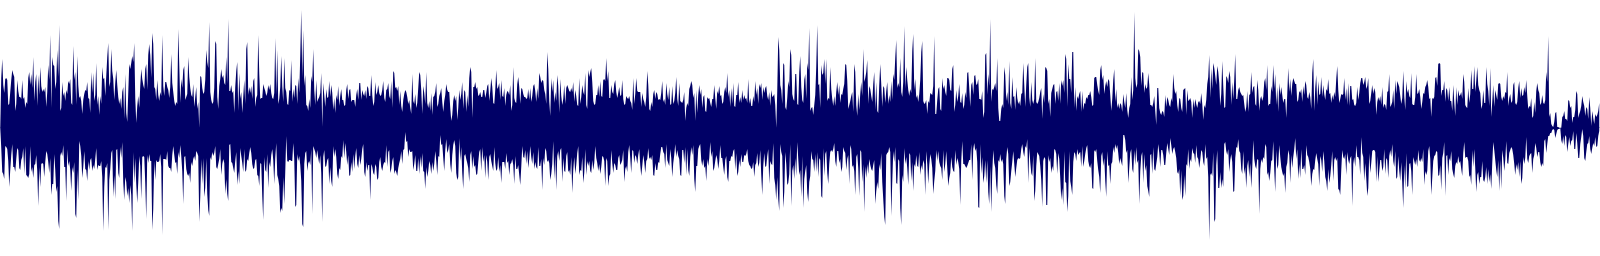 waveform of track #106650